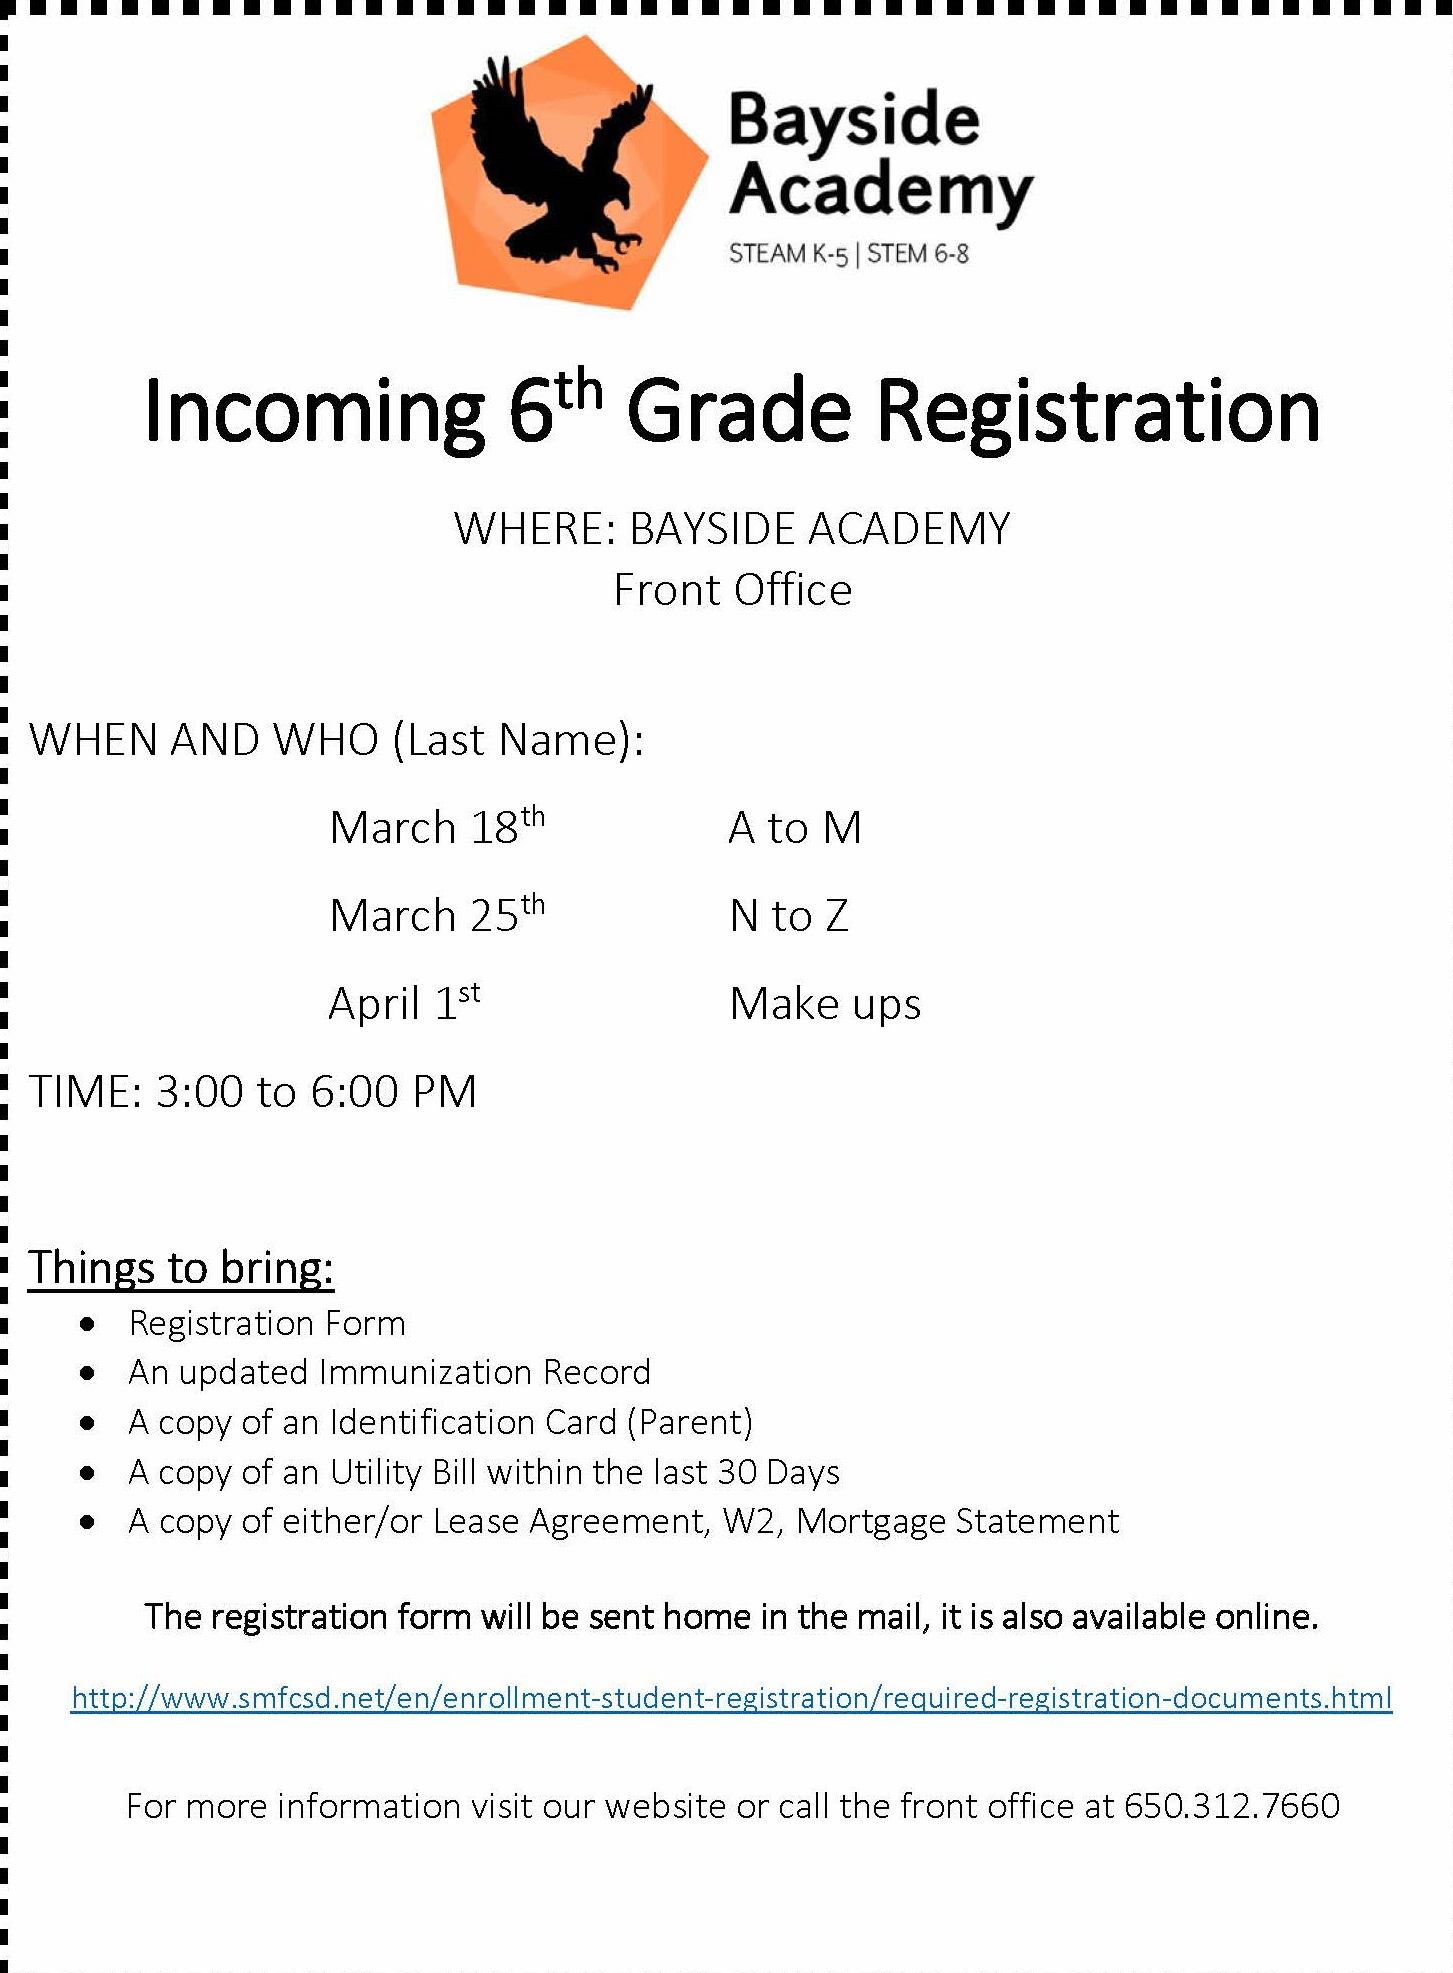 Bayside Academny Info Flyer for 6th Grade Registration